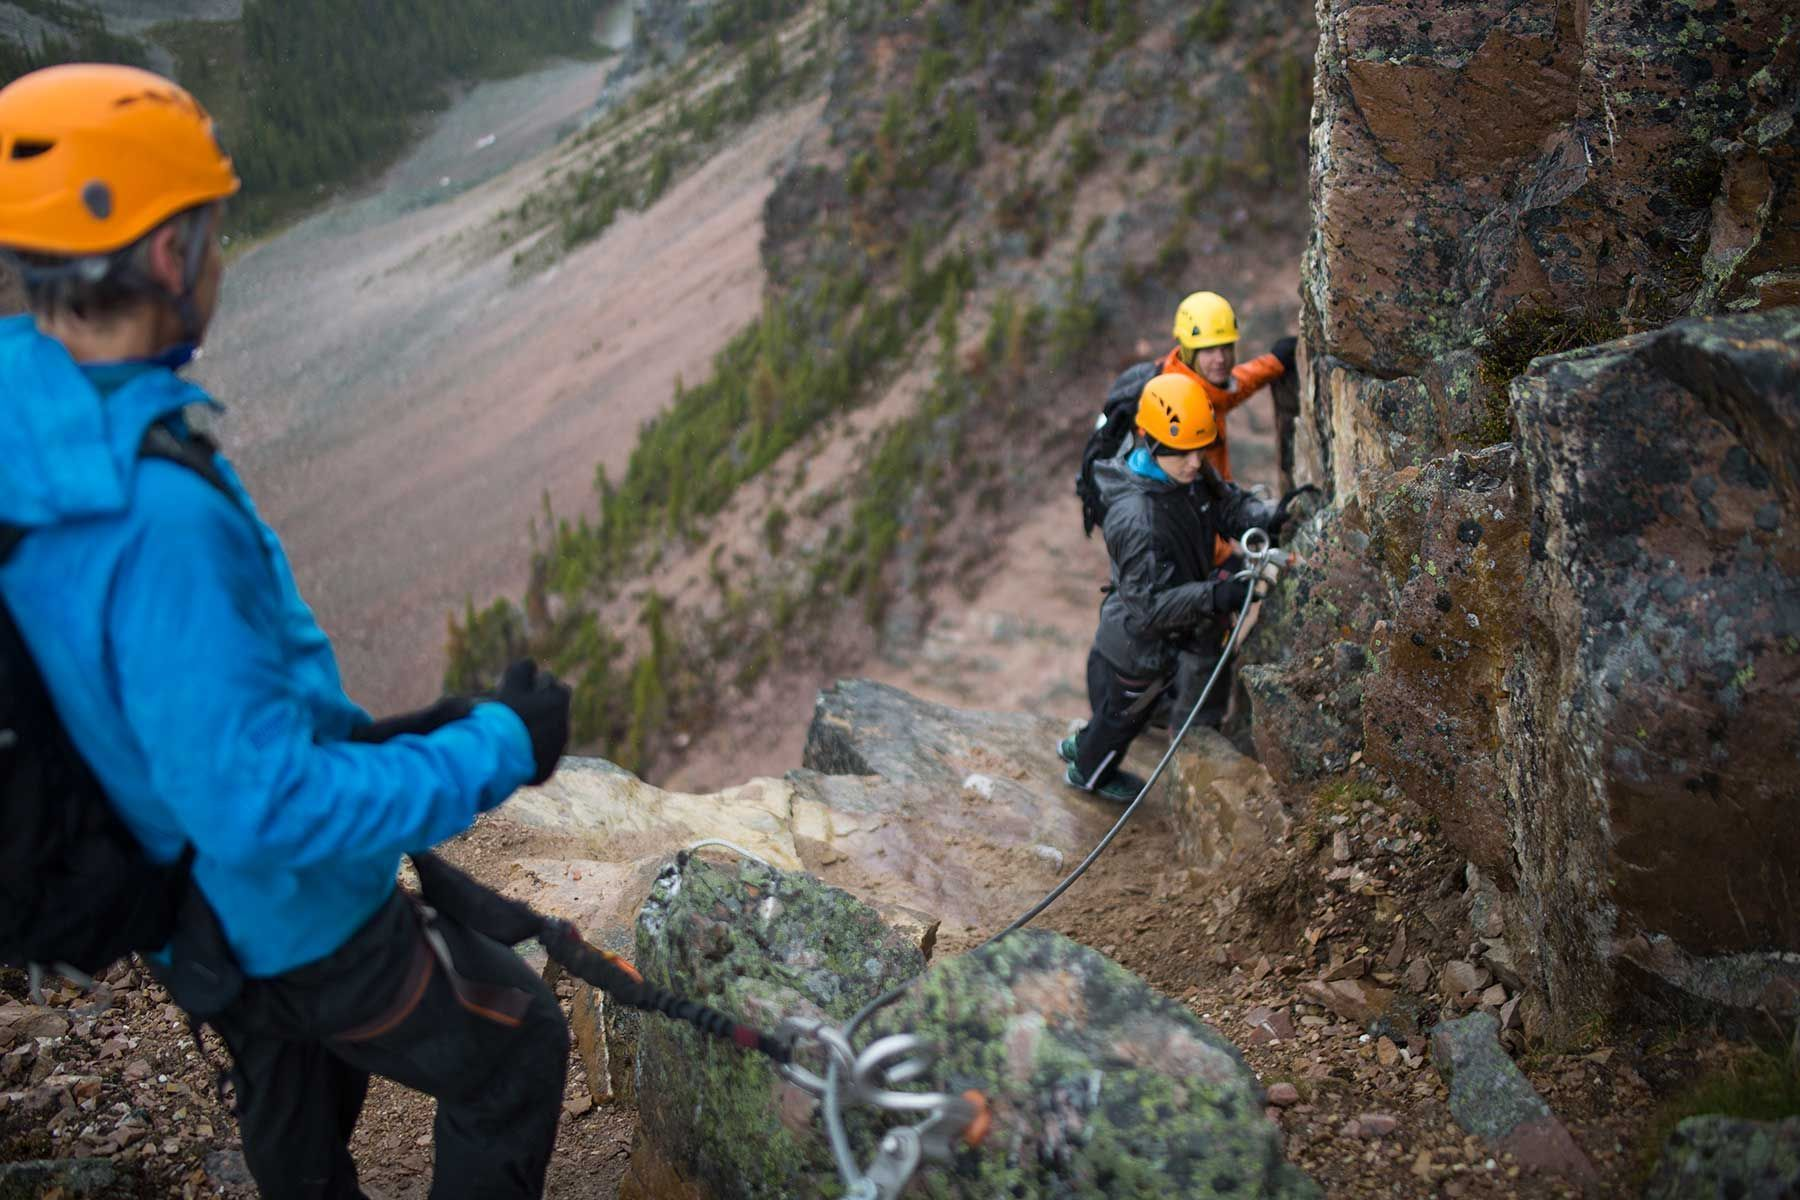 Conquering Fear of Heights in Climbing • Outdoor Women's